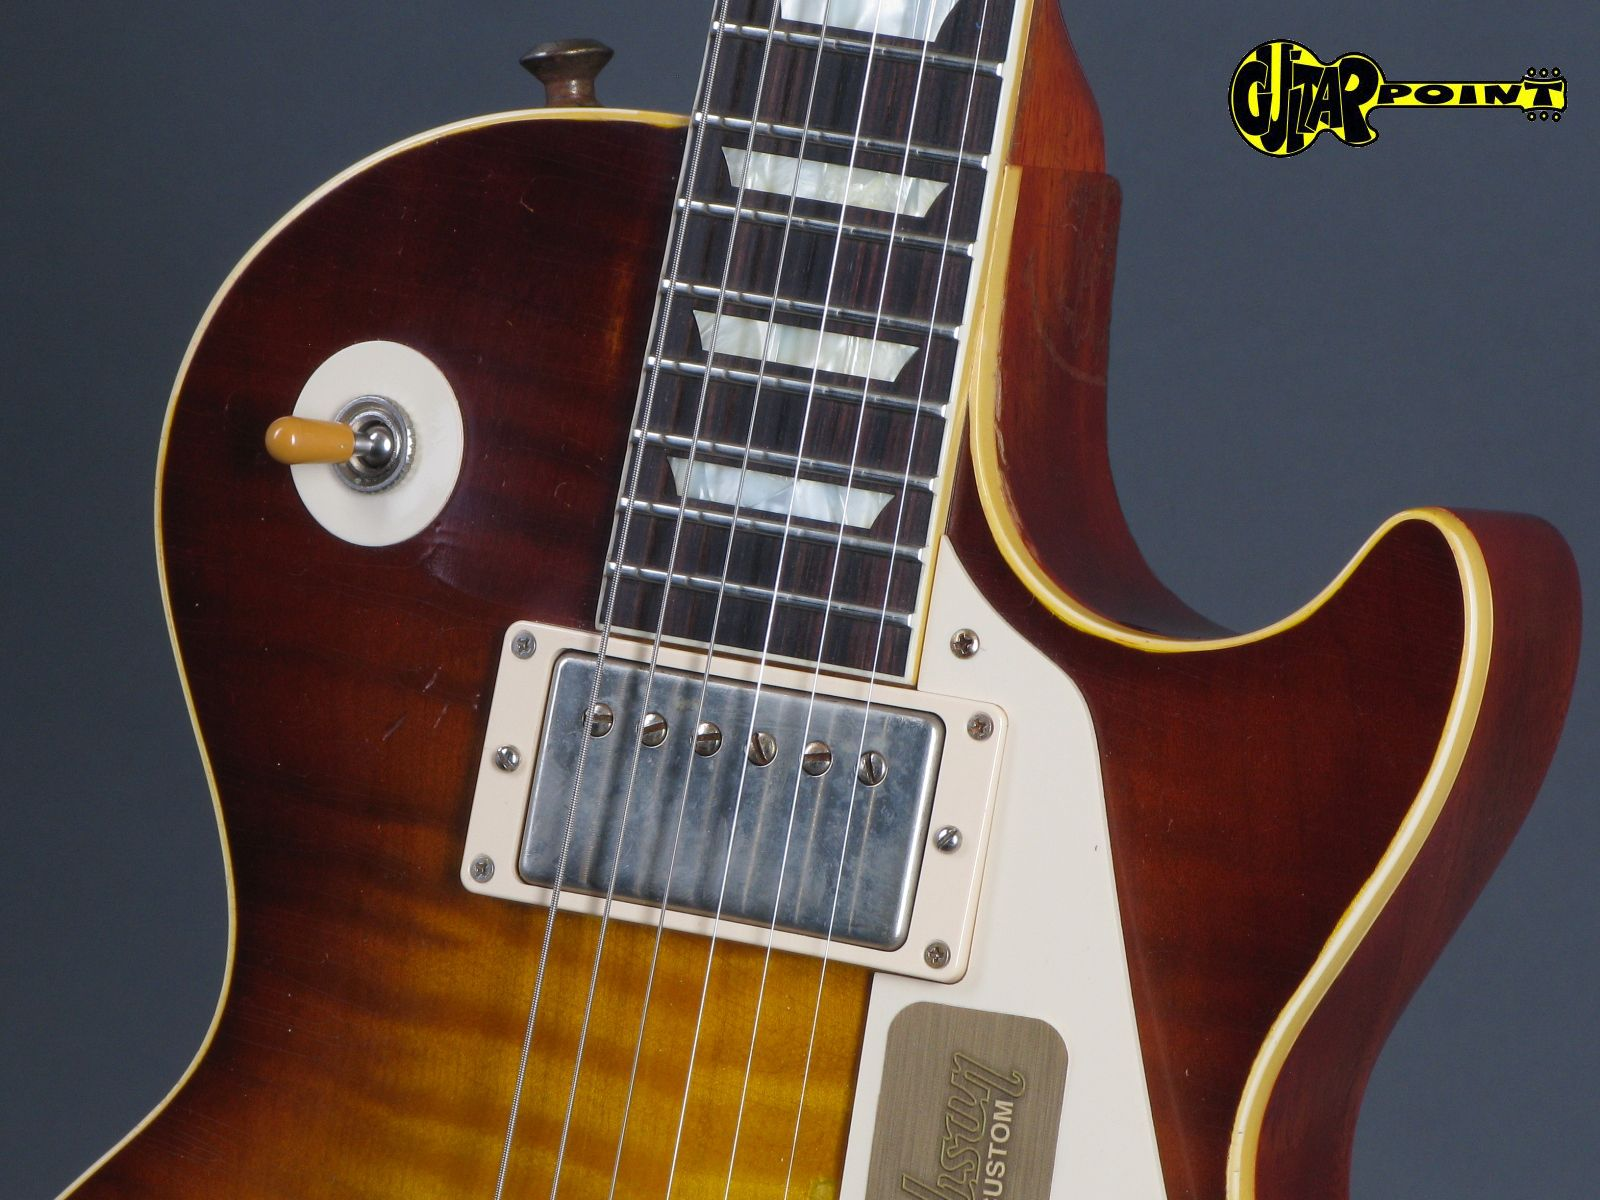 gibson les paul 1959 joe perry aged signed 2013 faded tobacco sunburst guitar for sale guitarpoint. Black Bedroom Furniture Sets. Home Design Ideas